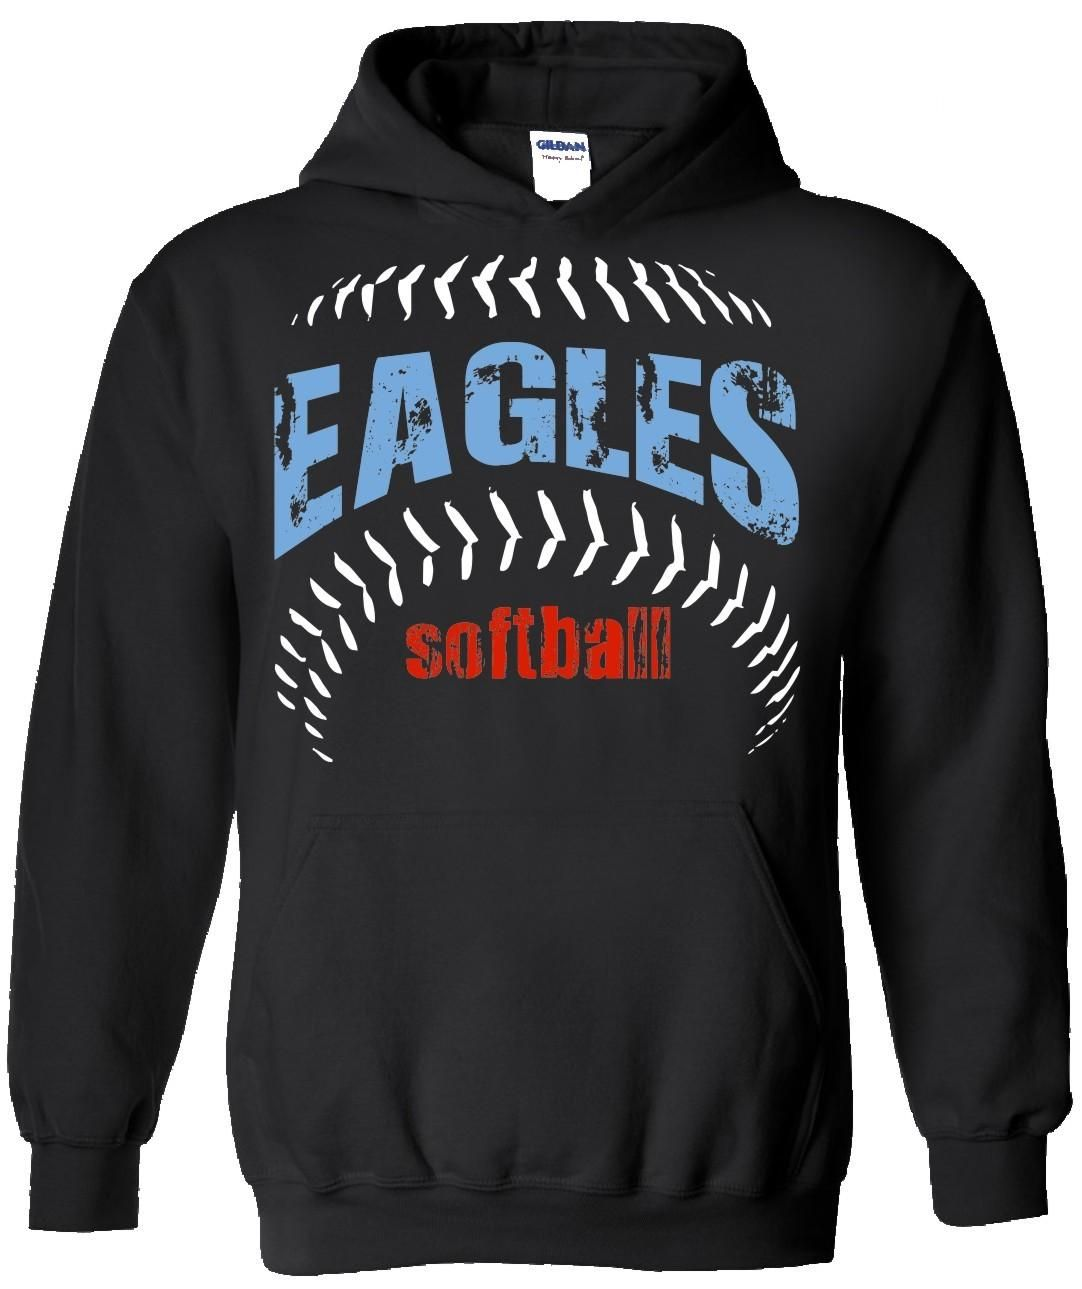 T shirt design ideas for schools - Eagles Spiritwear Hoodie Design School Spiritwear Shirts And Apparel Use Your Mascot Graphic Or